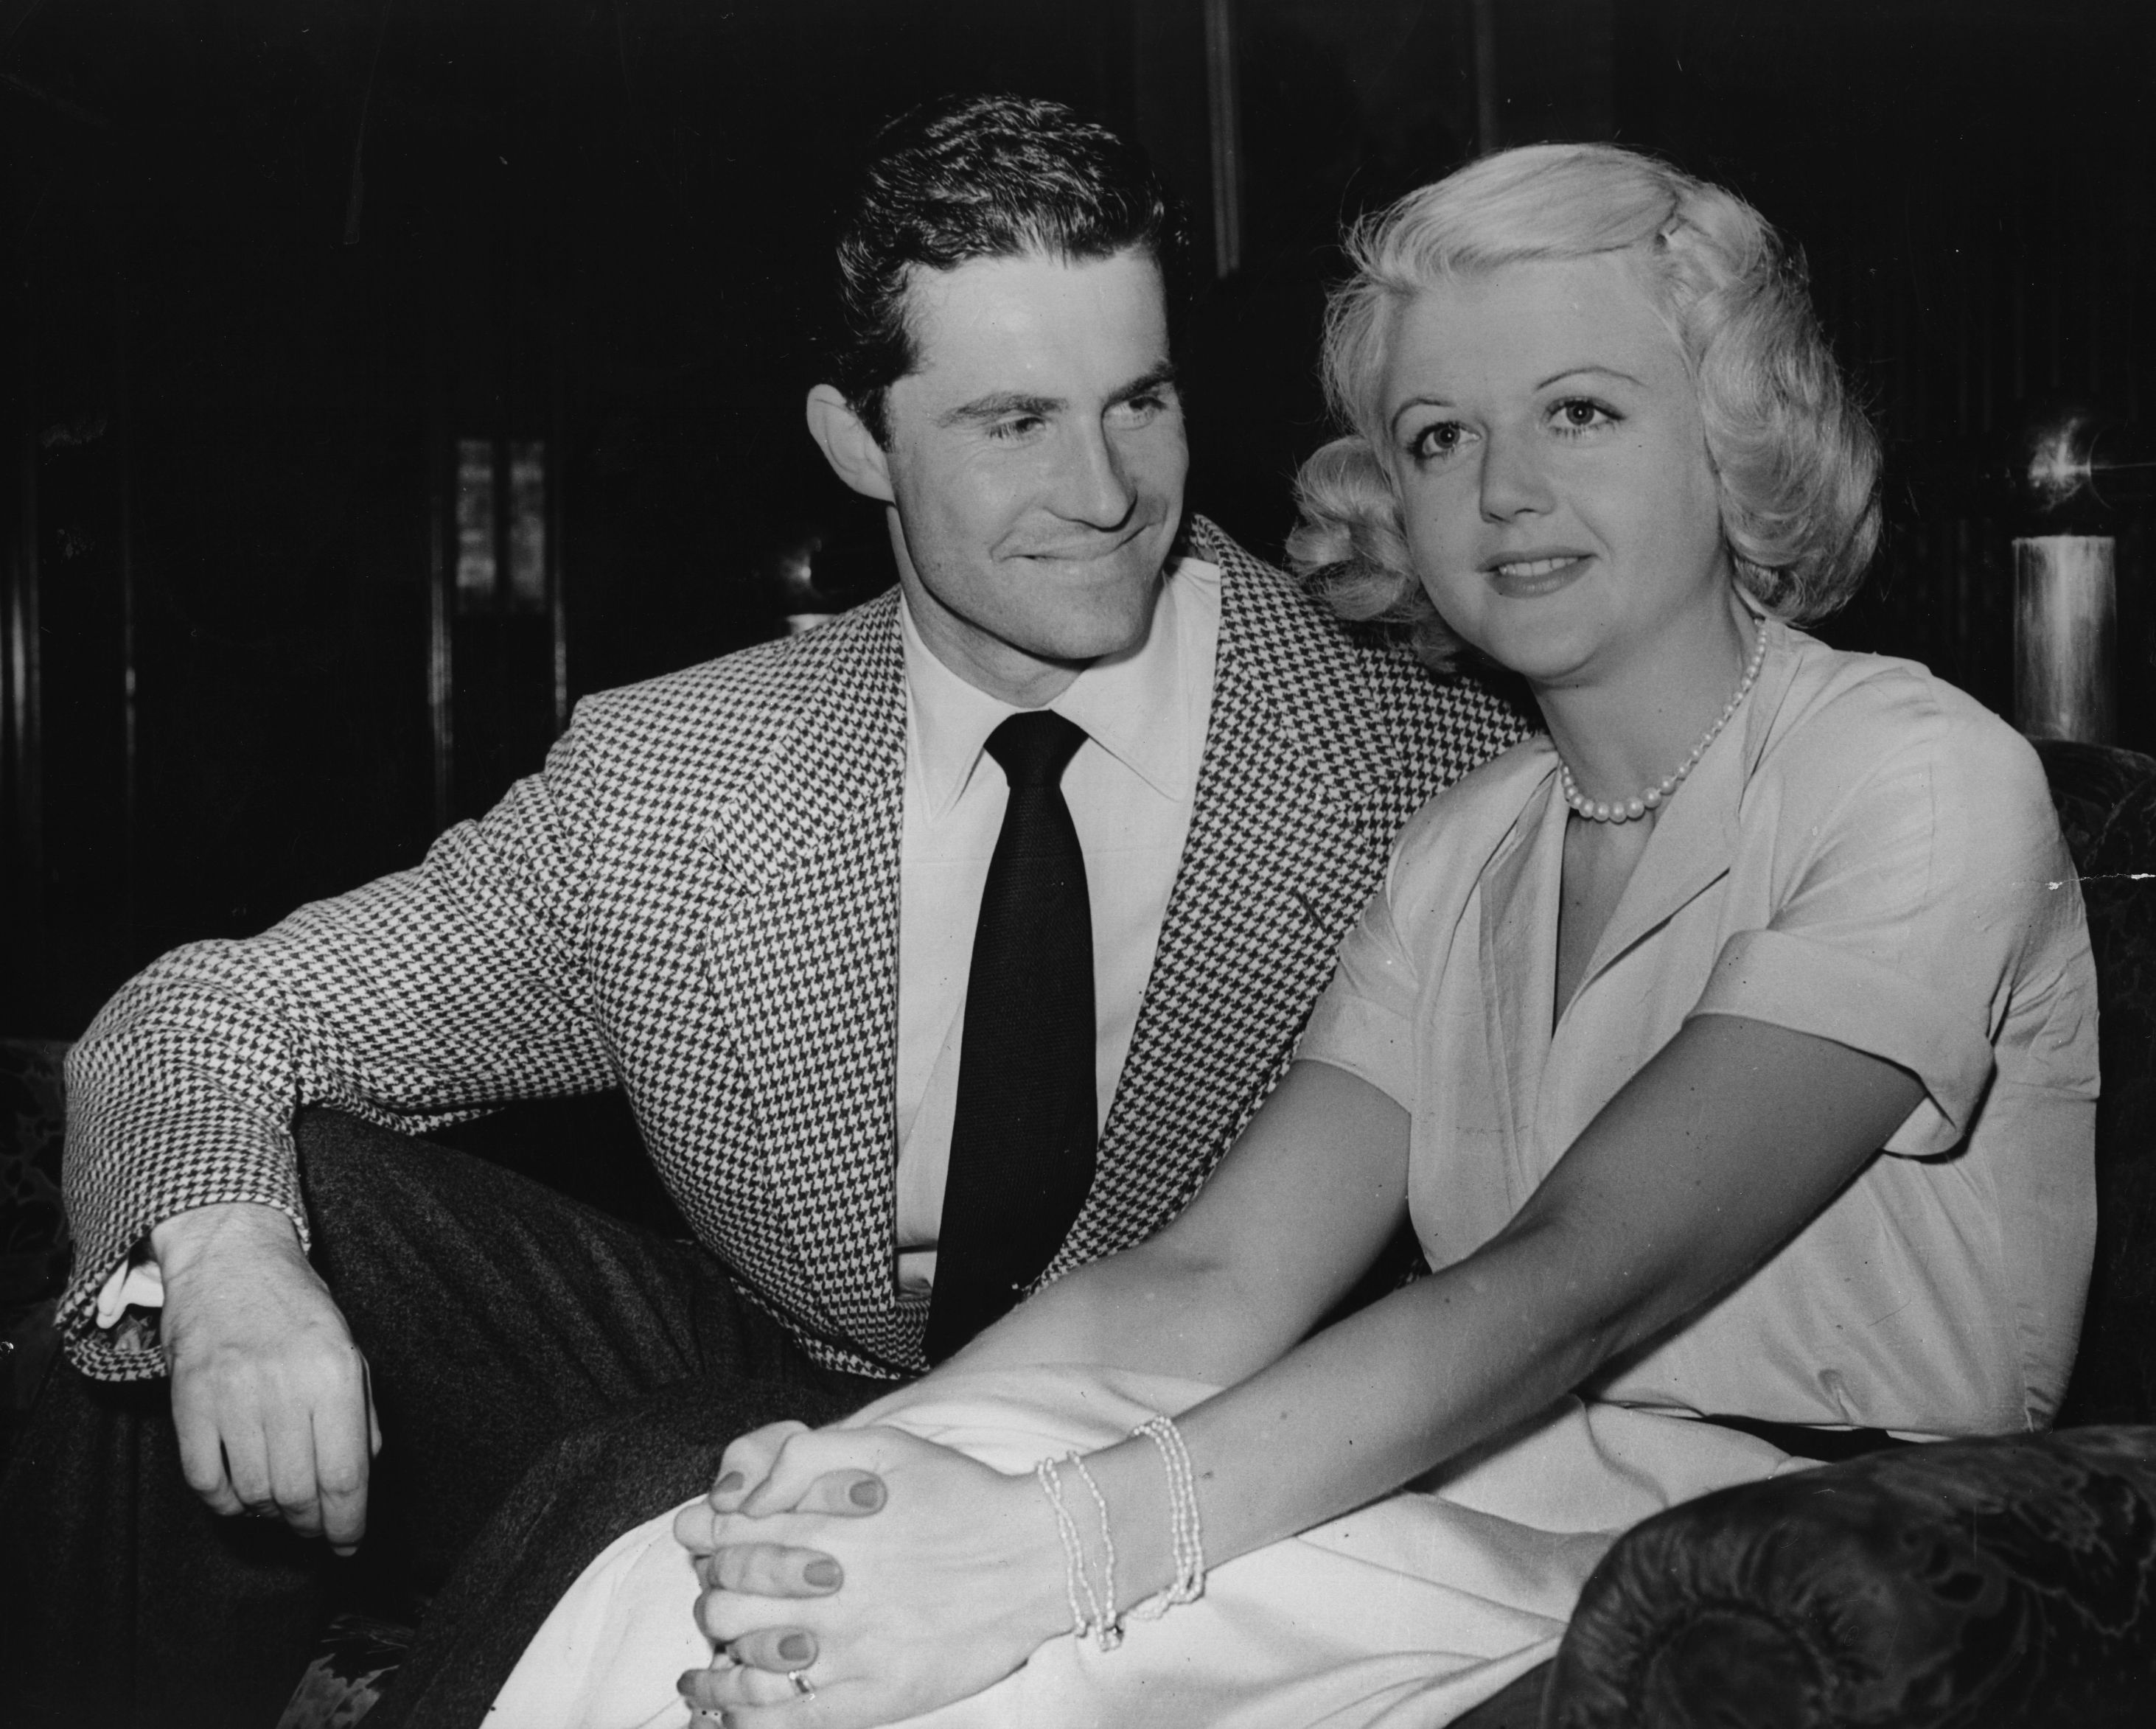 27th July 1949: British actress Angela Lansbury with Peter Shaw on their arrival at London Airport before their wedding. (Photo by Keystone/Getty Images) TL